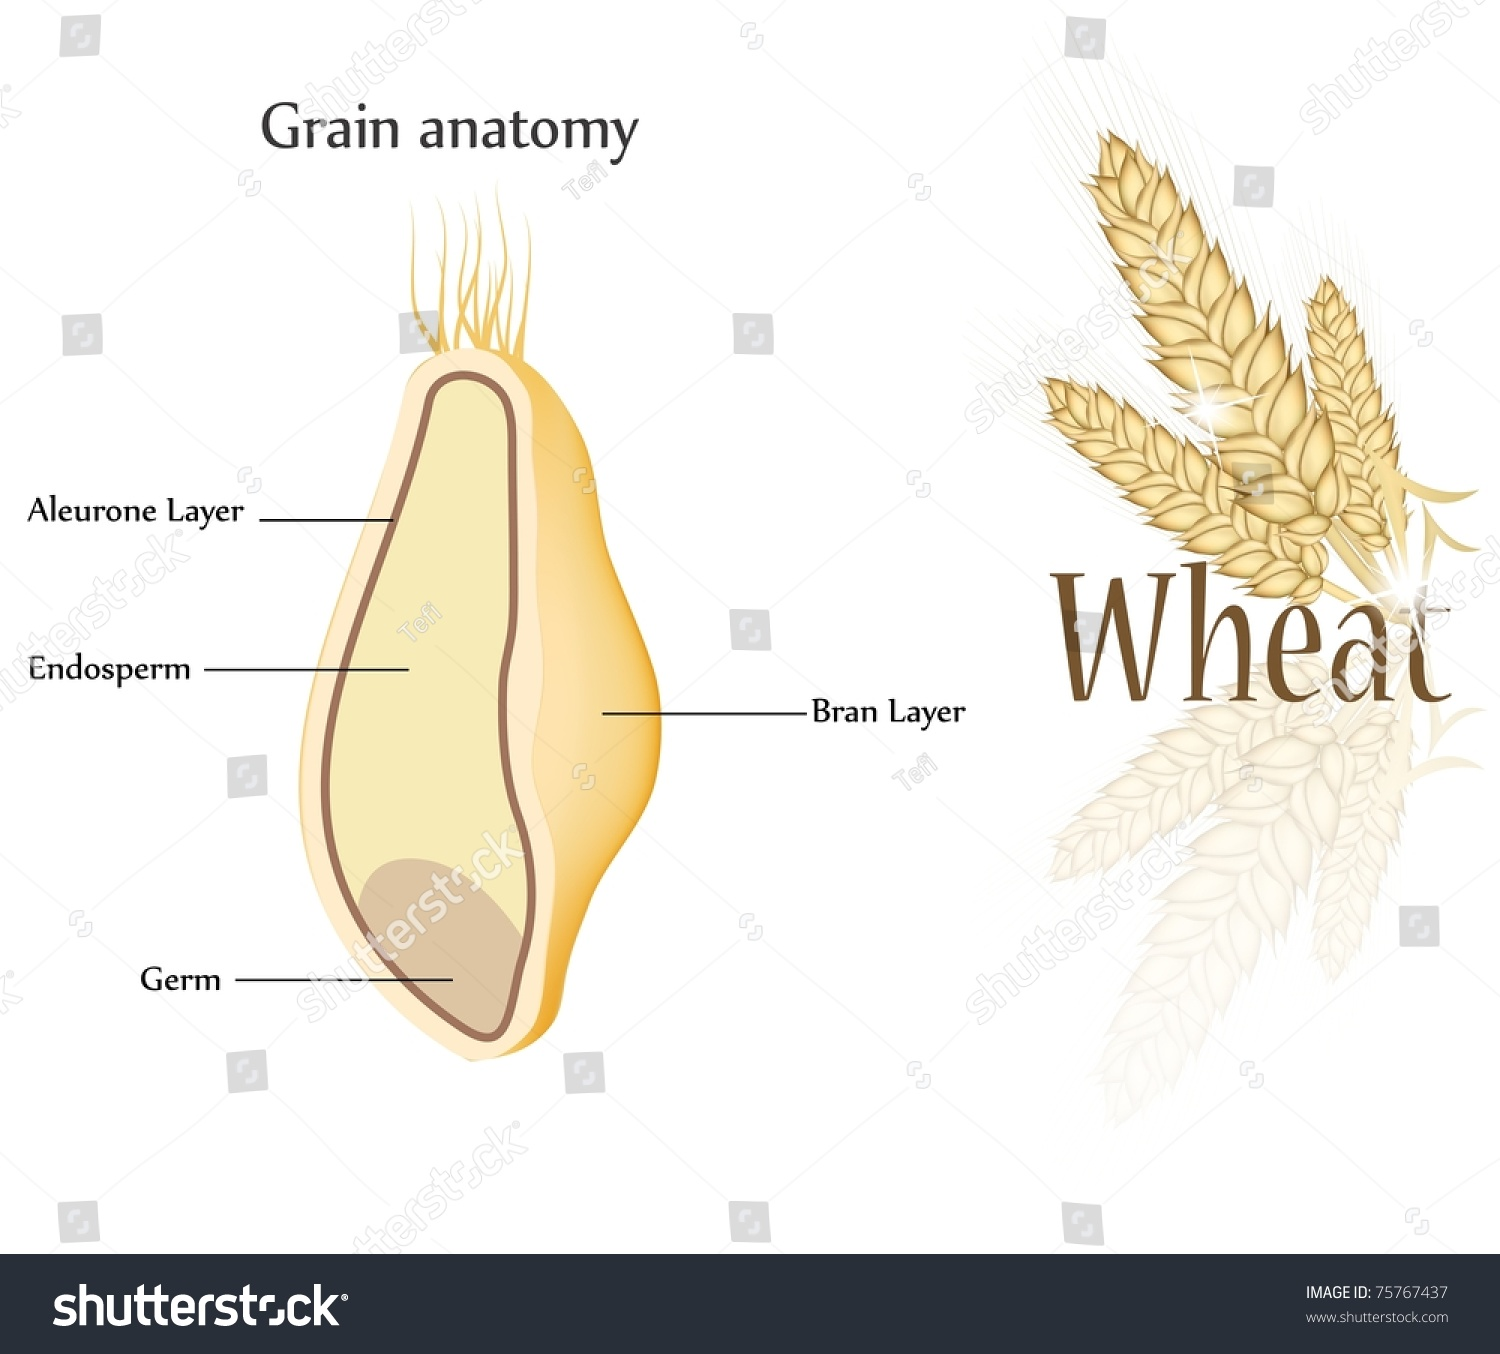 Wheat Grain Anatomy Cross Section Grain Stock Photo (Photo, Vector ...